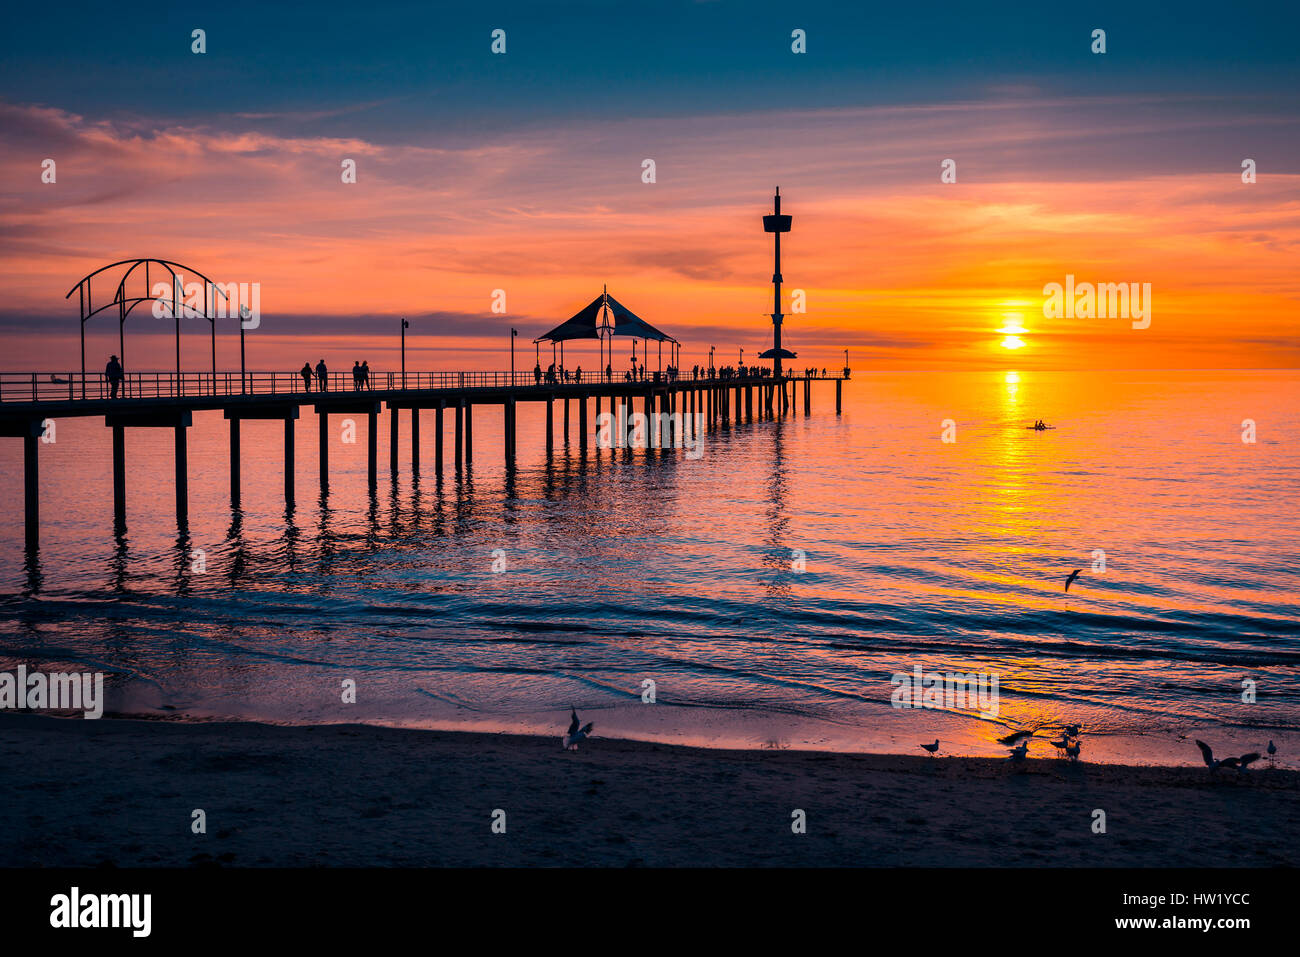 People walking on Brighton Jetty at sunset, South Australia - Stock Image